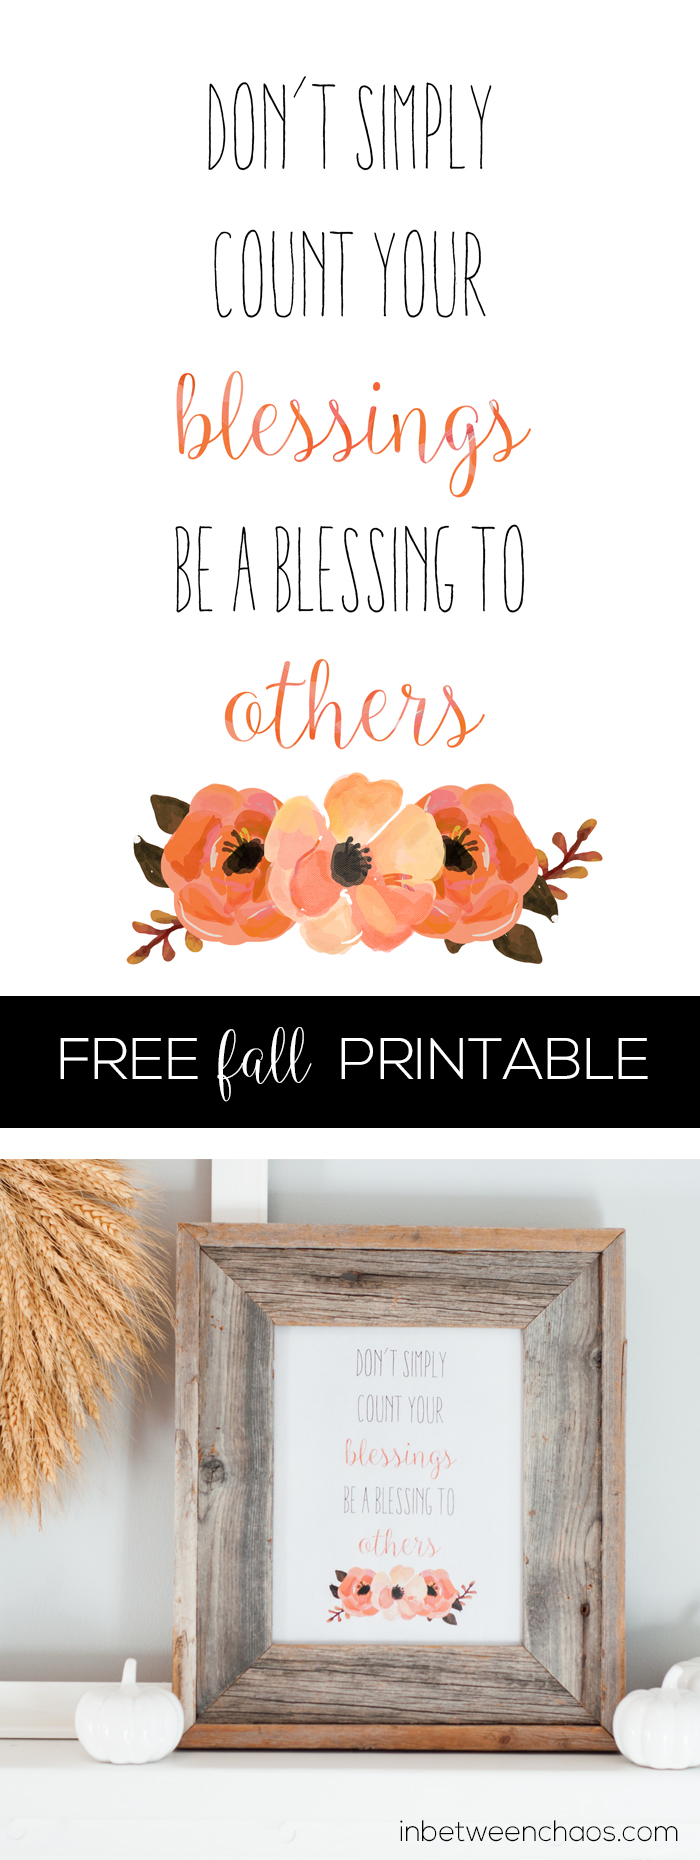 Be a Blessing to Others Free Thankgiving + Fall Printable | inbetweenchaos.com